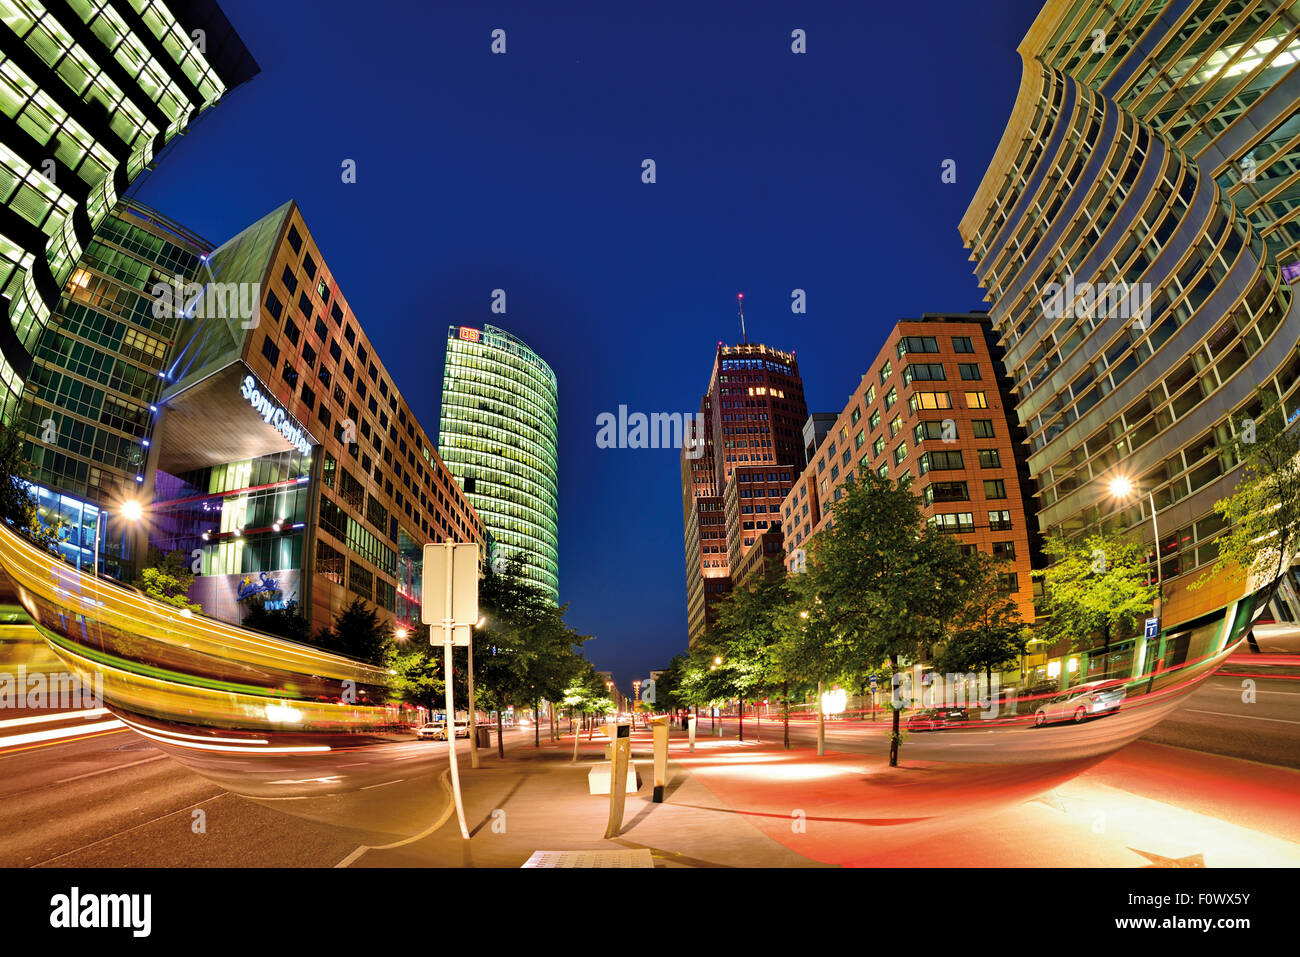 Germany, Berlin: Contemporary architecture at Potsdamer Platz by night - Stock Image